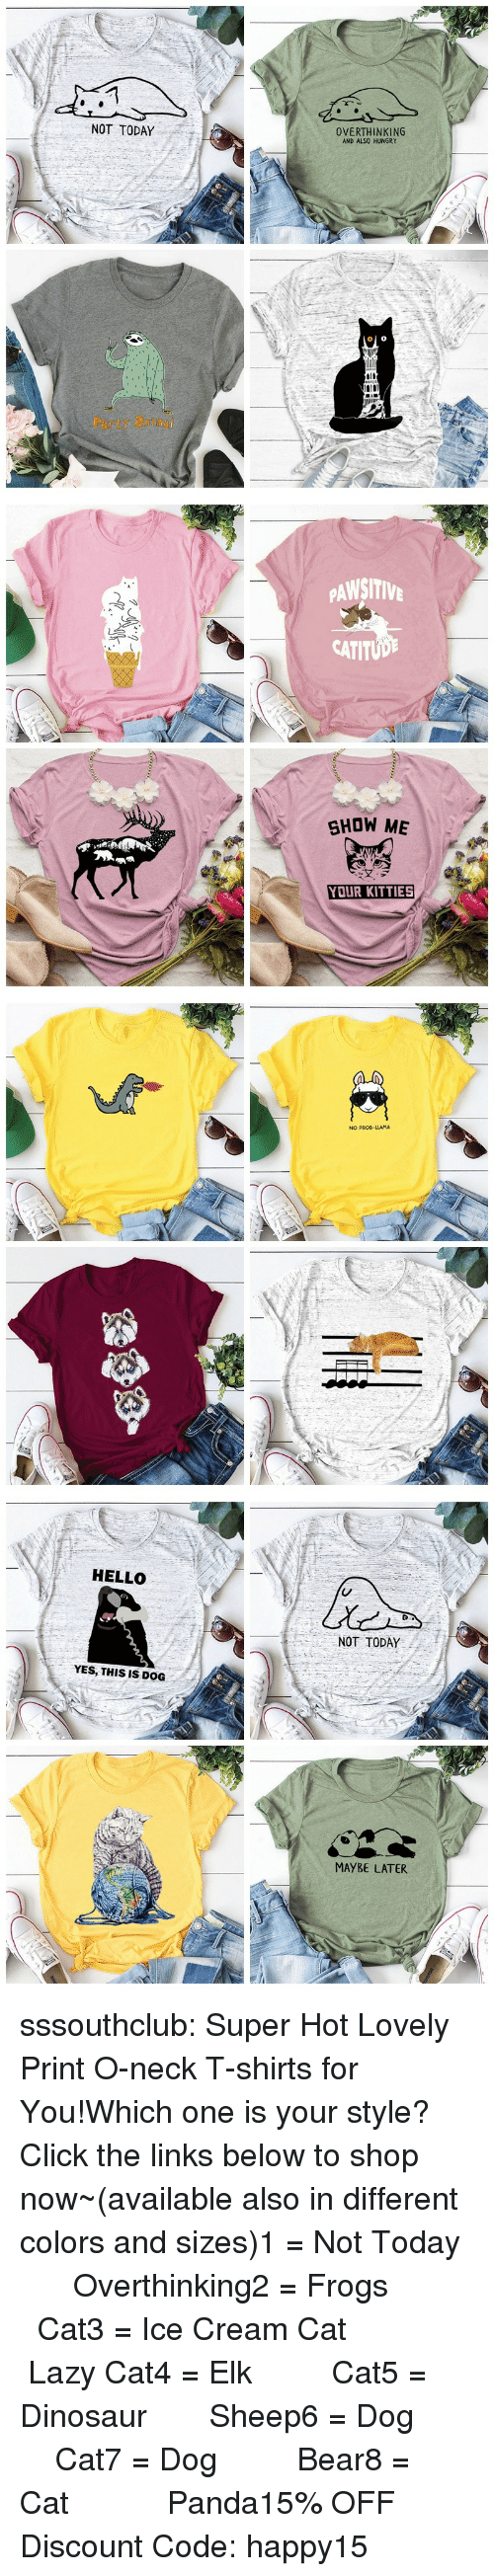 Click, Dinosaur, and Hello: NOT TODAY  OVERTHINKING  AND ALSO HUNGRY  Party atm   PAWSITIV  CATITUD  SHOW ME  YOUR KITTIES   NO PROD-LLAMA   HELLO  NOT TODAY  YES, THIS IS DOG  MAYBE LATER sssouthclub:  Super Hot Lovely Print O-neck T-shirts for You!Which one is your style? Click the links below to shop now~(available also in different colors and sizes)1 = Not Today  ☆★  Overthinking2 = Frogs   ☆★  Cat3 = Ice Cream Cat  ☆★  Lazy Cat4 = Elk   ☆★  Cat5 = Dinosaur  ☆★  Sheep6 = Dog   ☆★  Cat7 = Dog   ☆★  Bear8 = Cat    ☆★  Panda15% OFF Discount Code: happy15